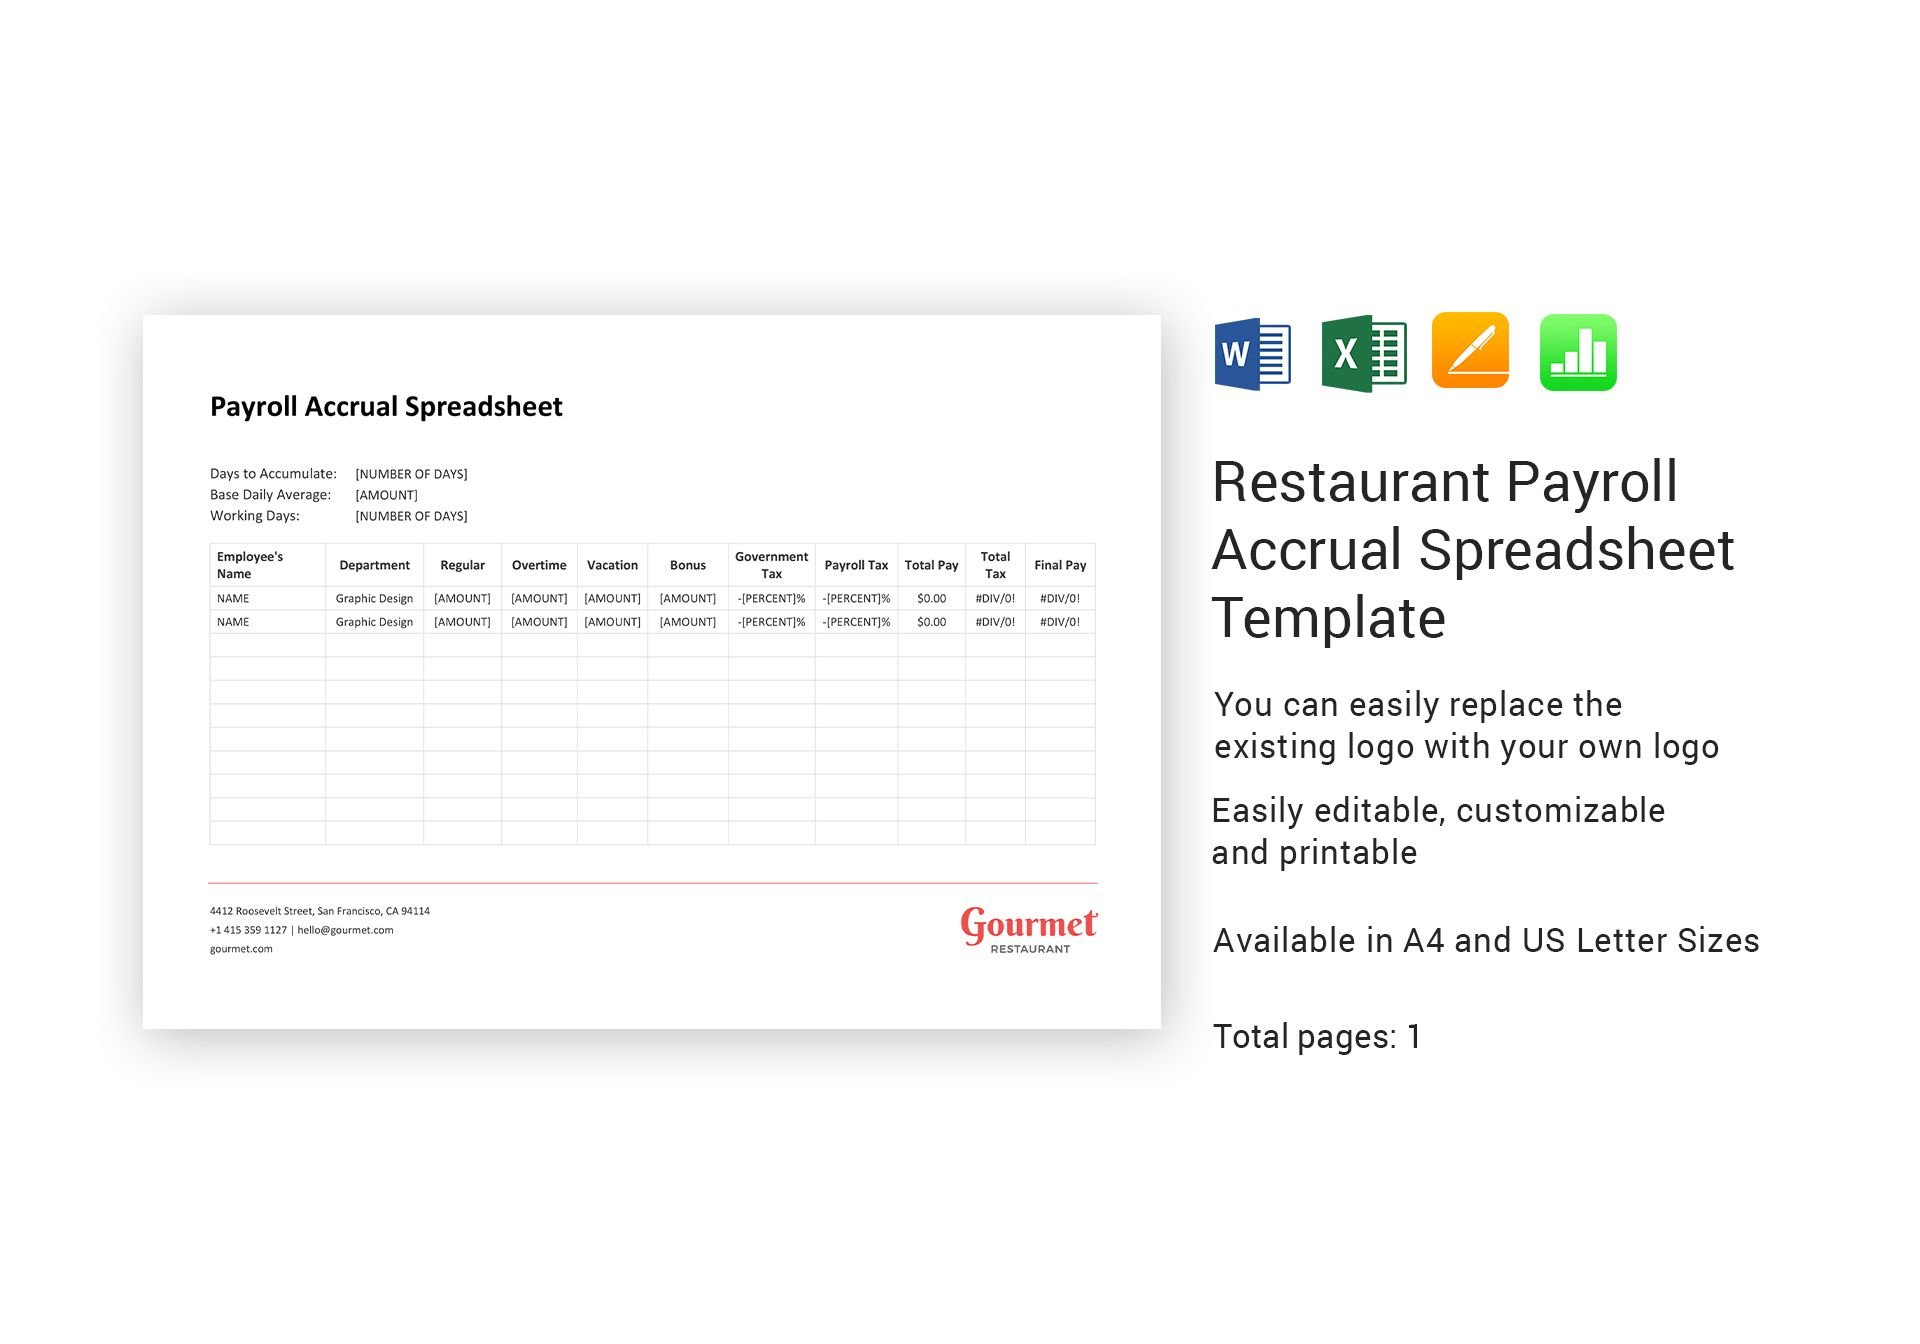 Restaurant Payroll Accrual Spreadsheet Template In Word, Excel ... Pertaining To Payroll Accrual Spreadsheet